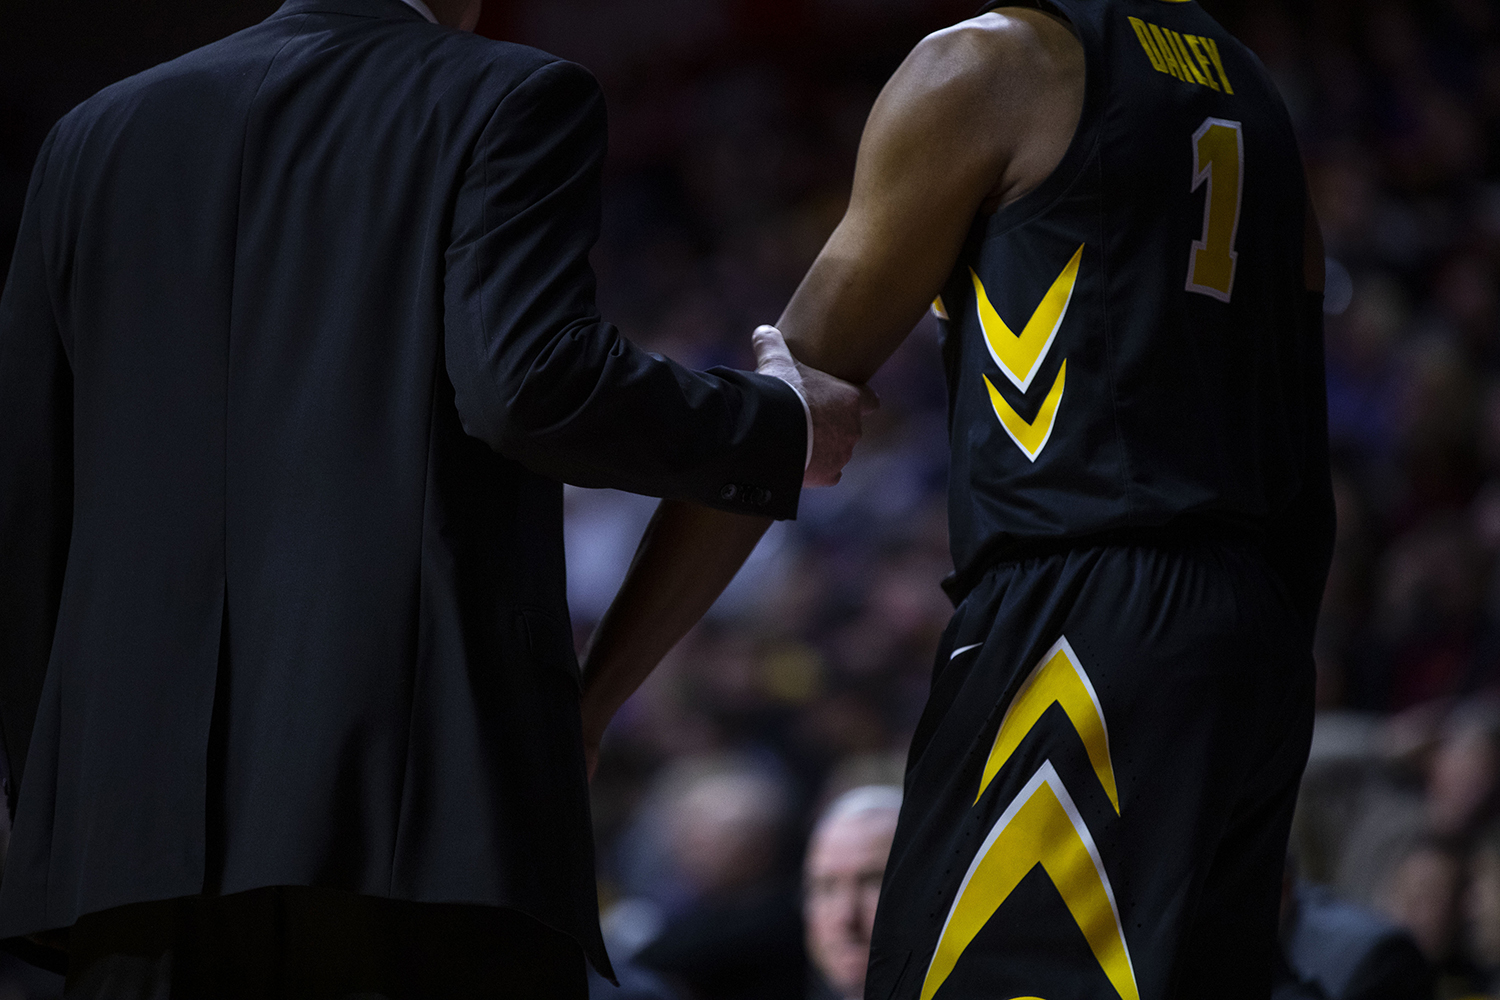 Iowa+head+coach+Fran+McCaffery+sends+guard+Maishe+Dailey+into+the+game+during+the+Iowa%2FUNI+men%27s+basketball+game+at+Wells+Fargo+Arena+in+Des+Moines+on+Saturday%2C+Dec.+15%2C+2018.+The+Hawkeyes+defeated+the+Panthers%2C+77-54.+